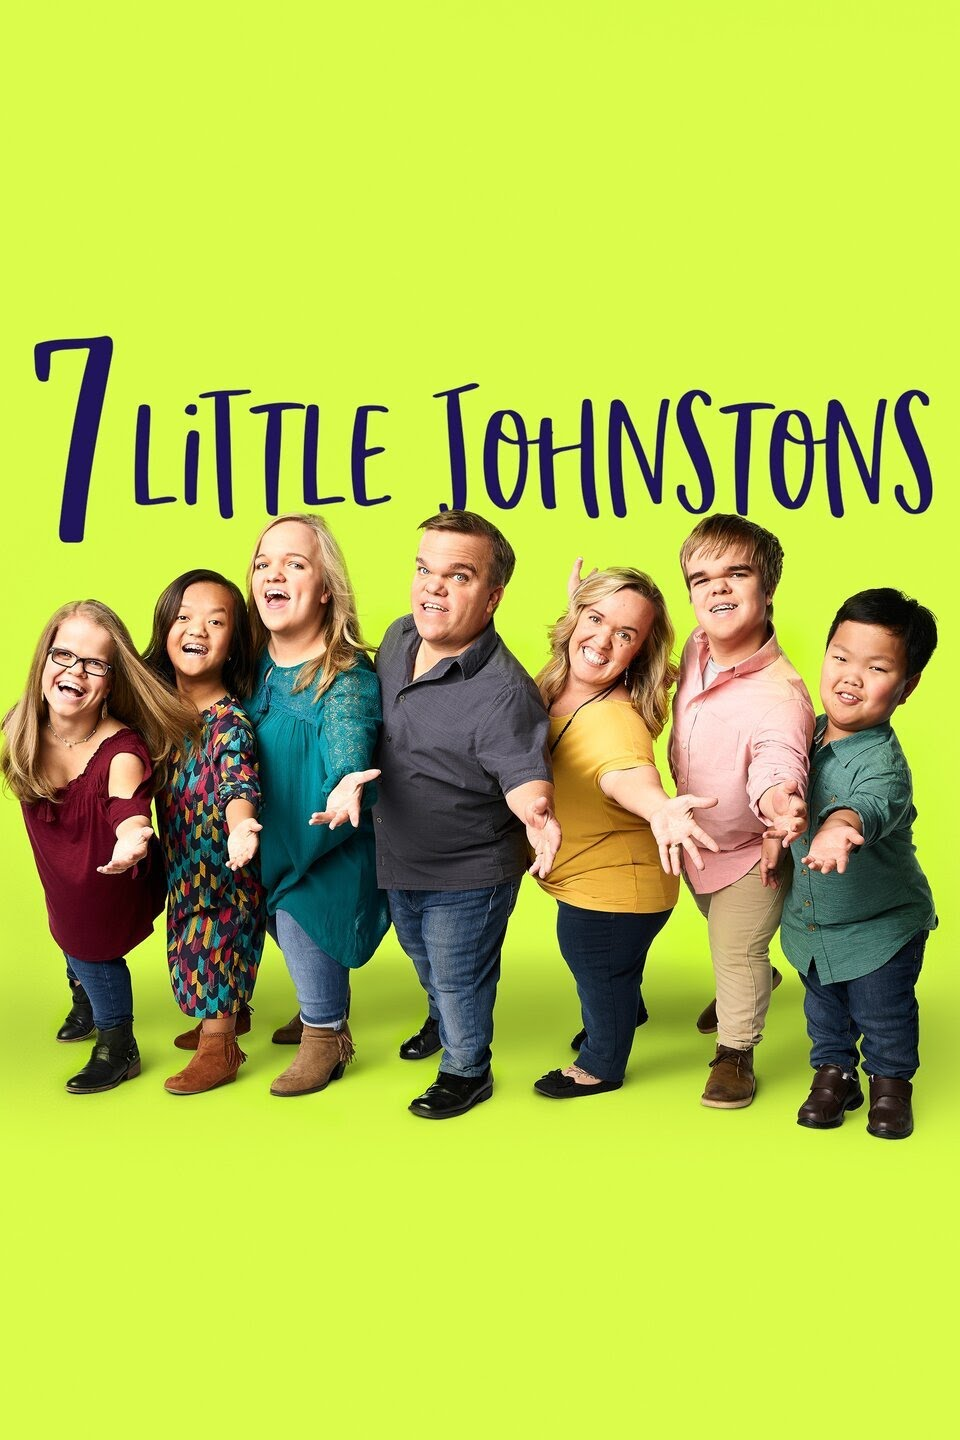 7 Little Johnstons Season 8 Episode 3 - Did Somebody Shrink You?